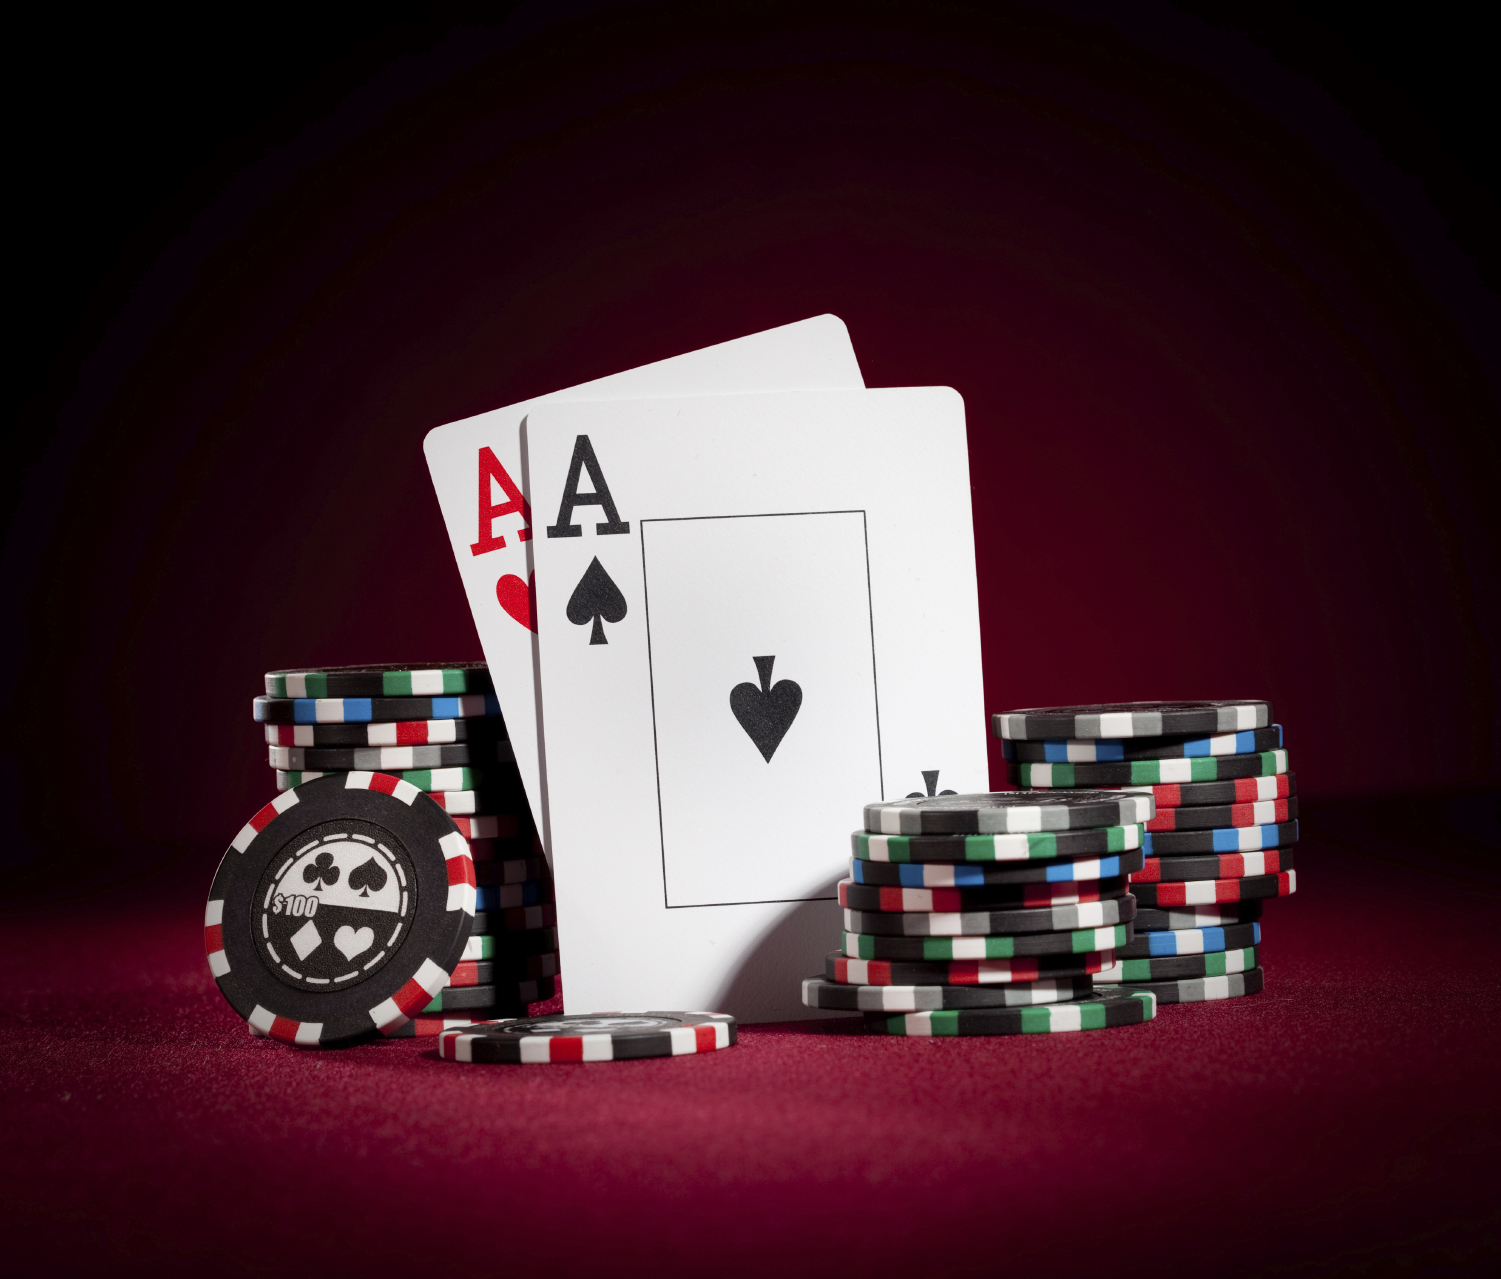 Poker: Turning Play Money into a Real Money Bankroll